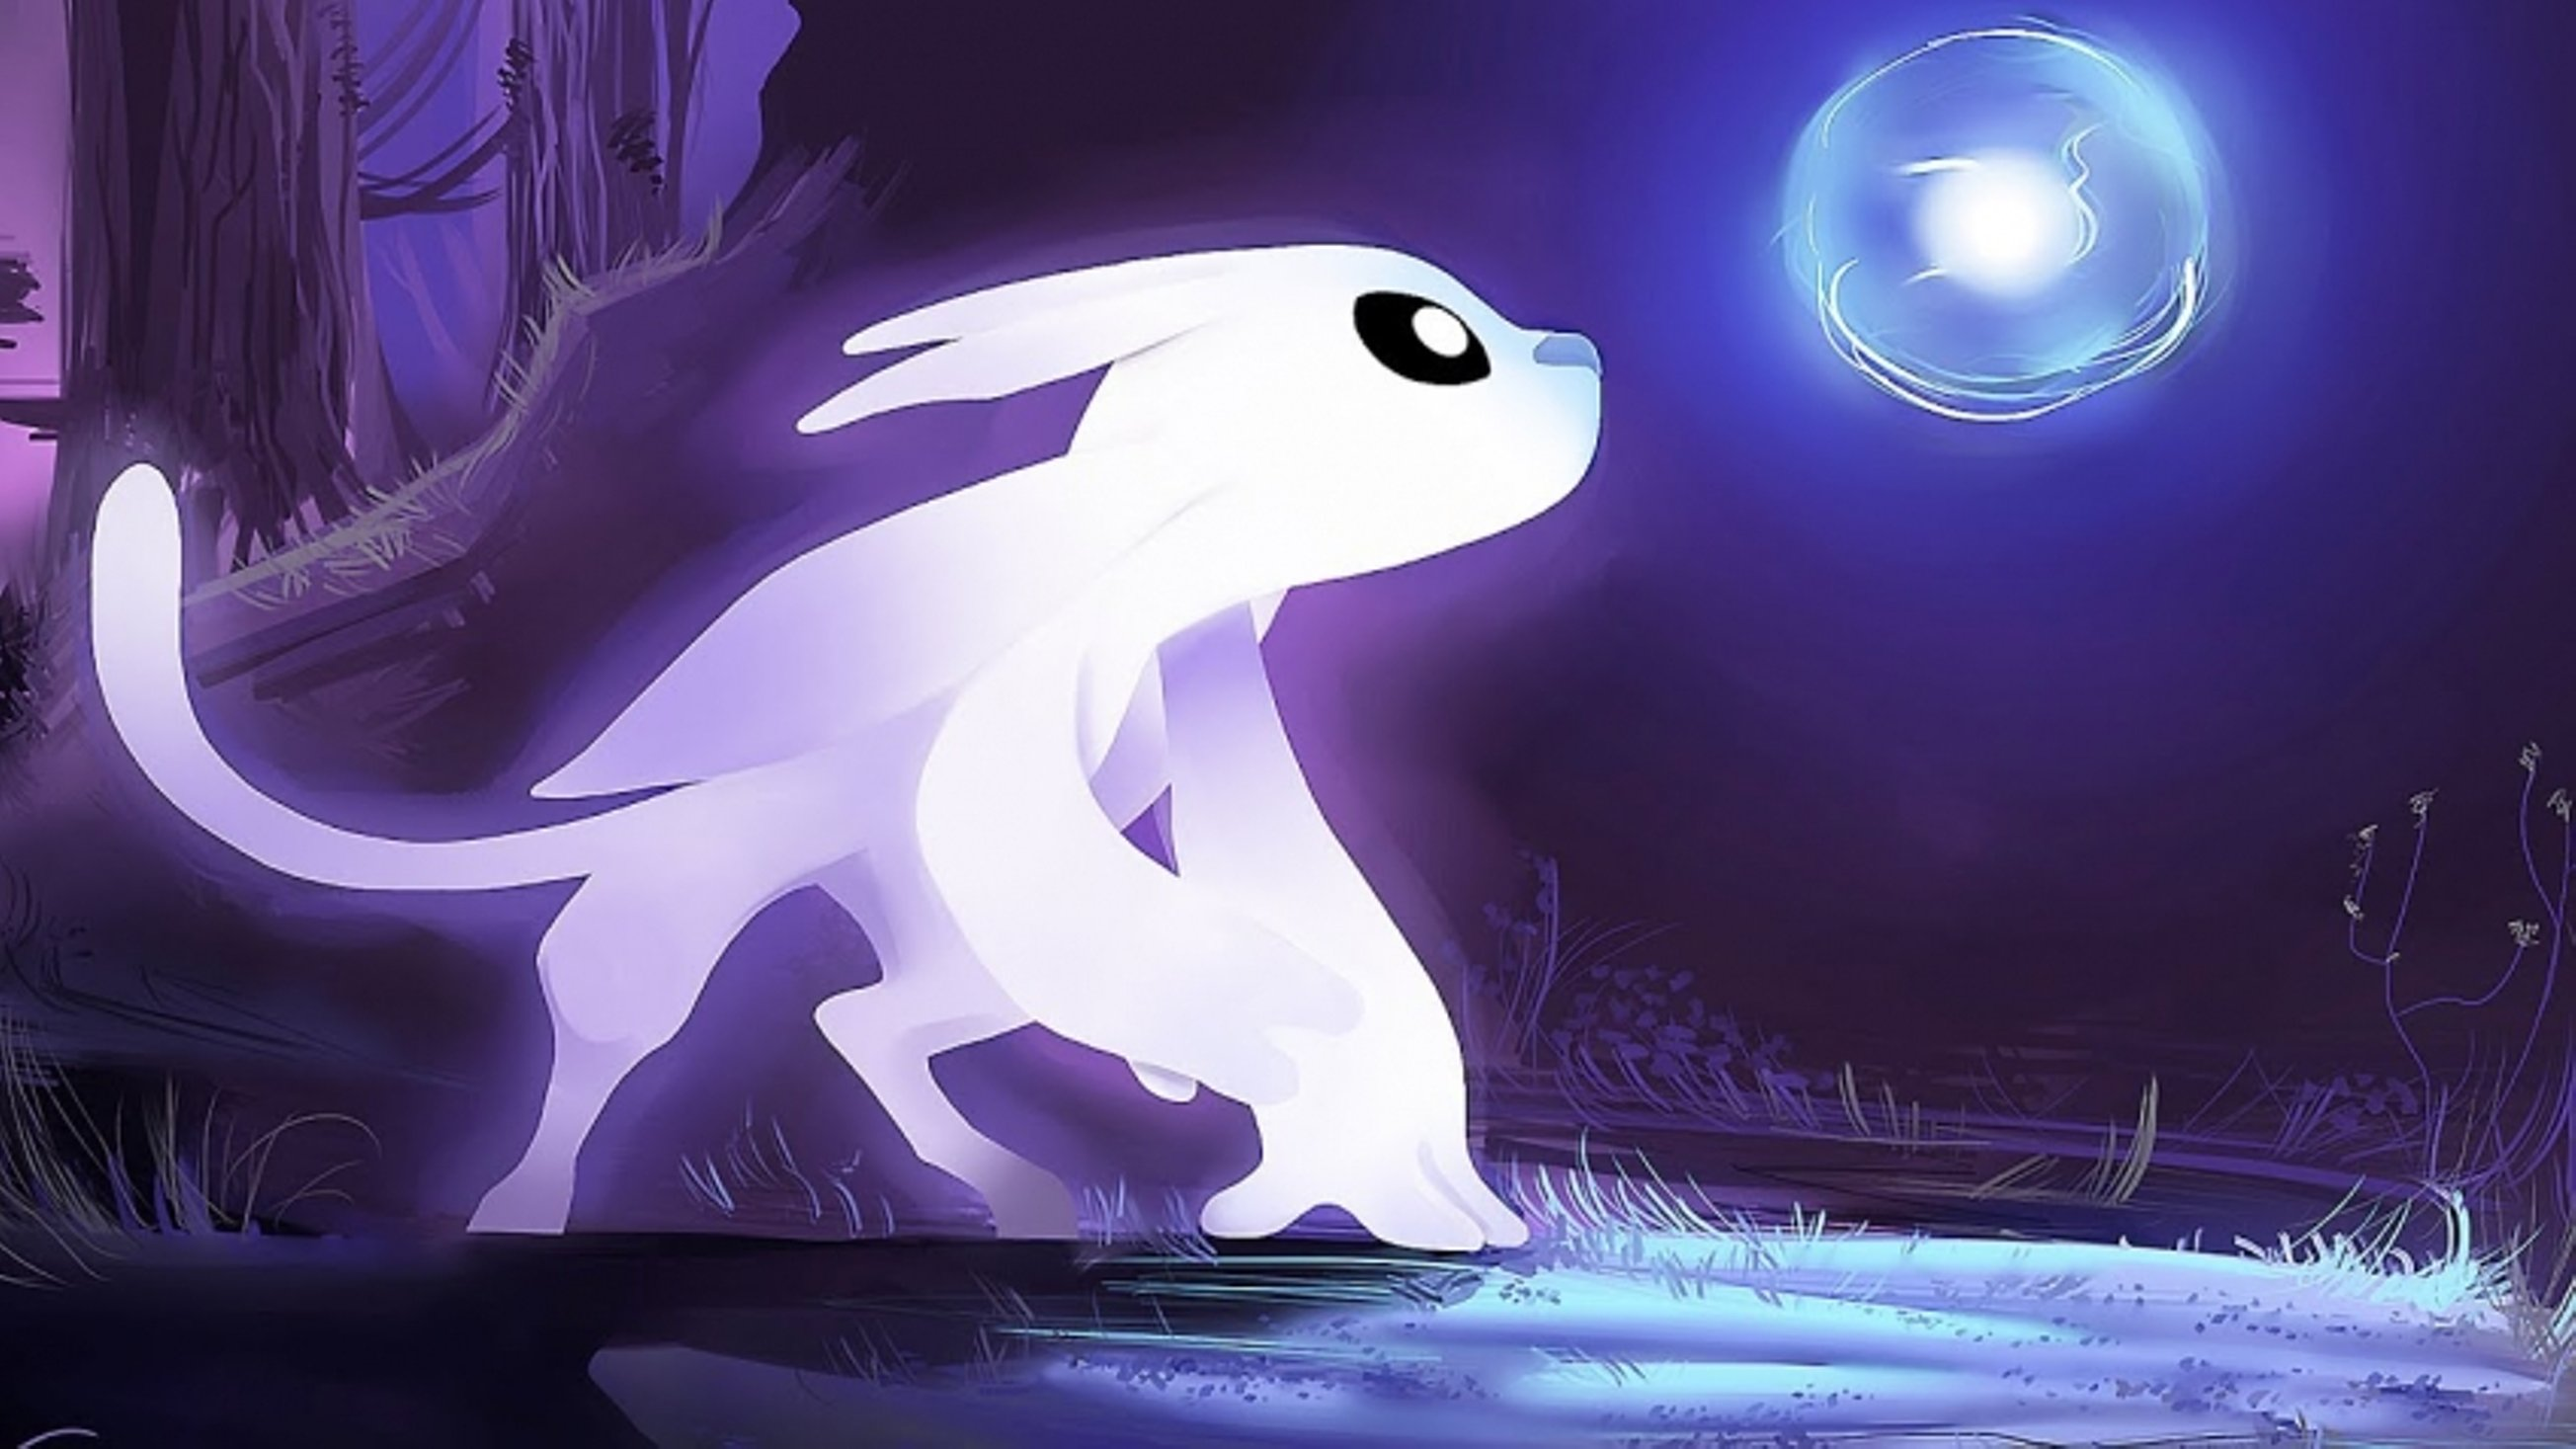 14 минут геймплея Ori and the Will of the Wisps